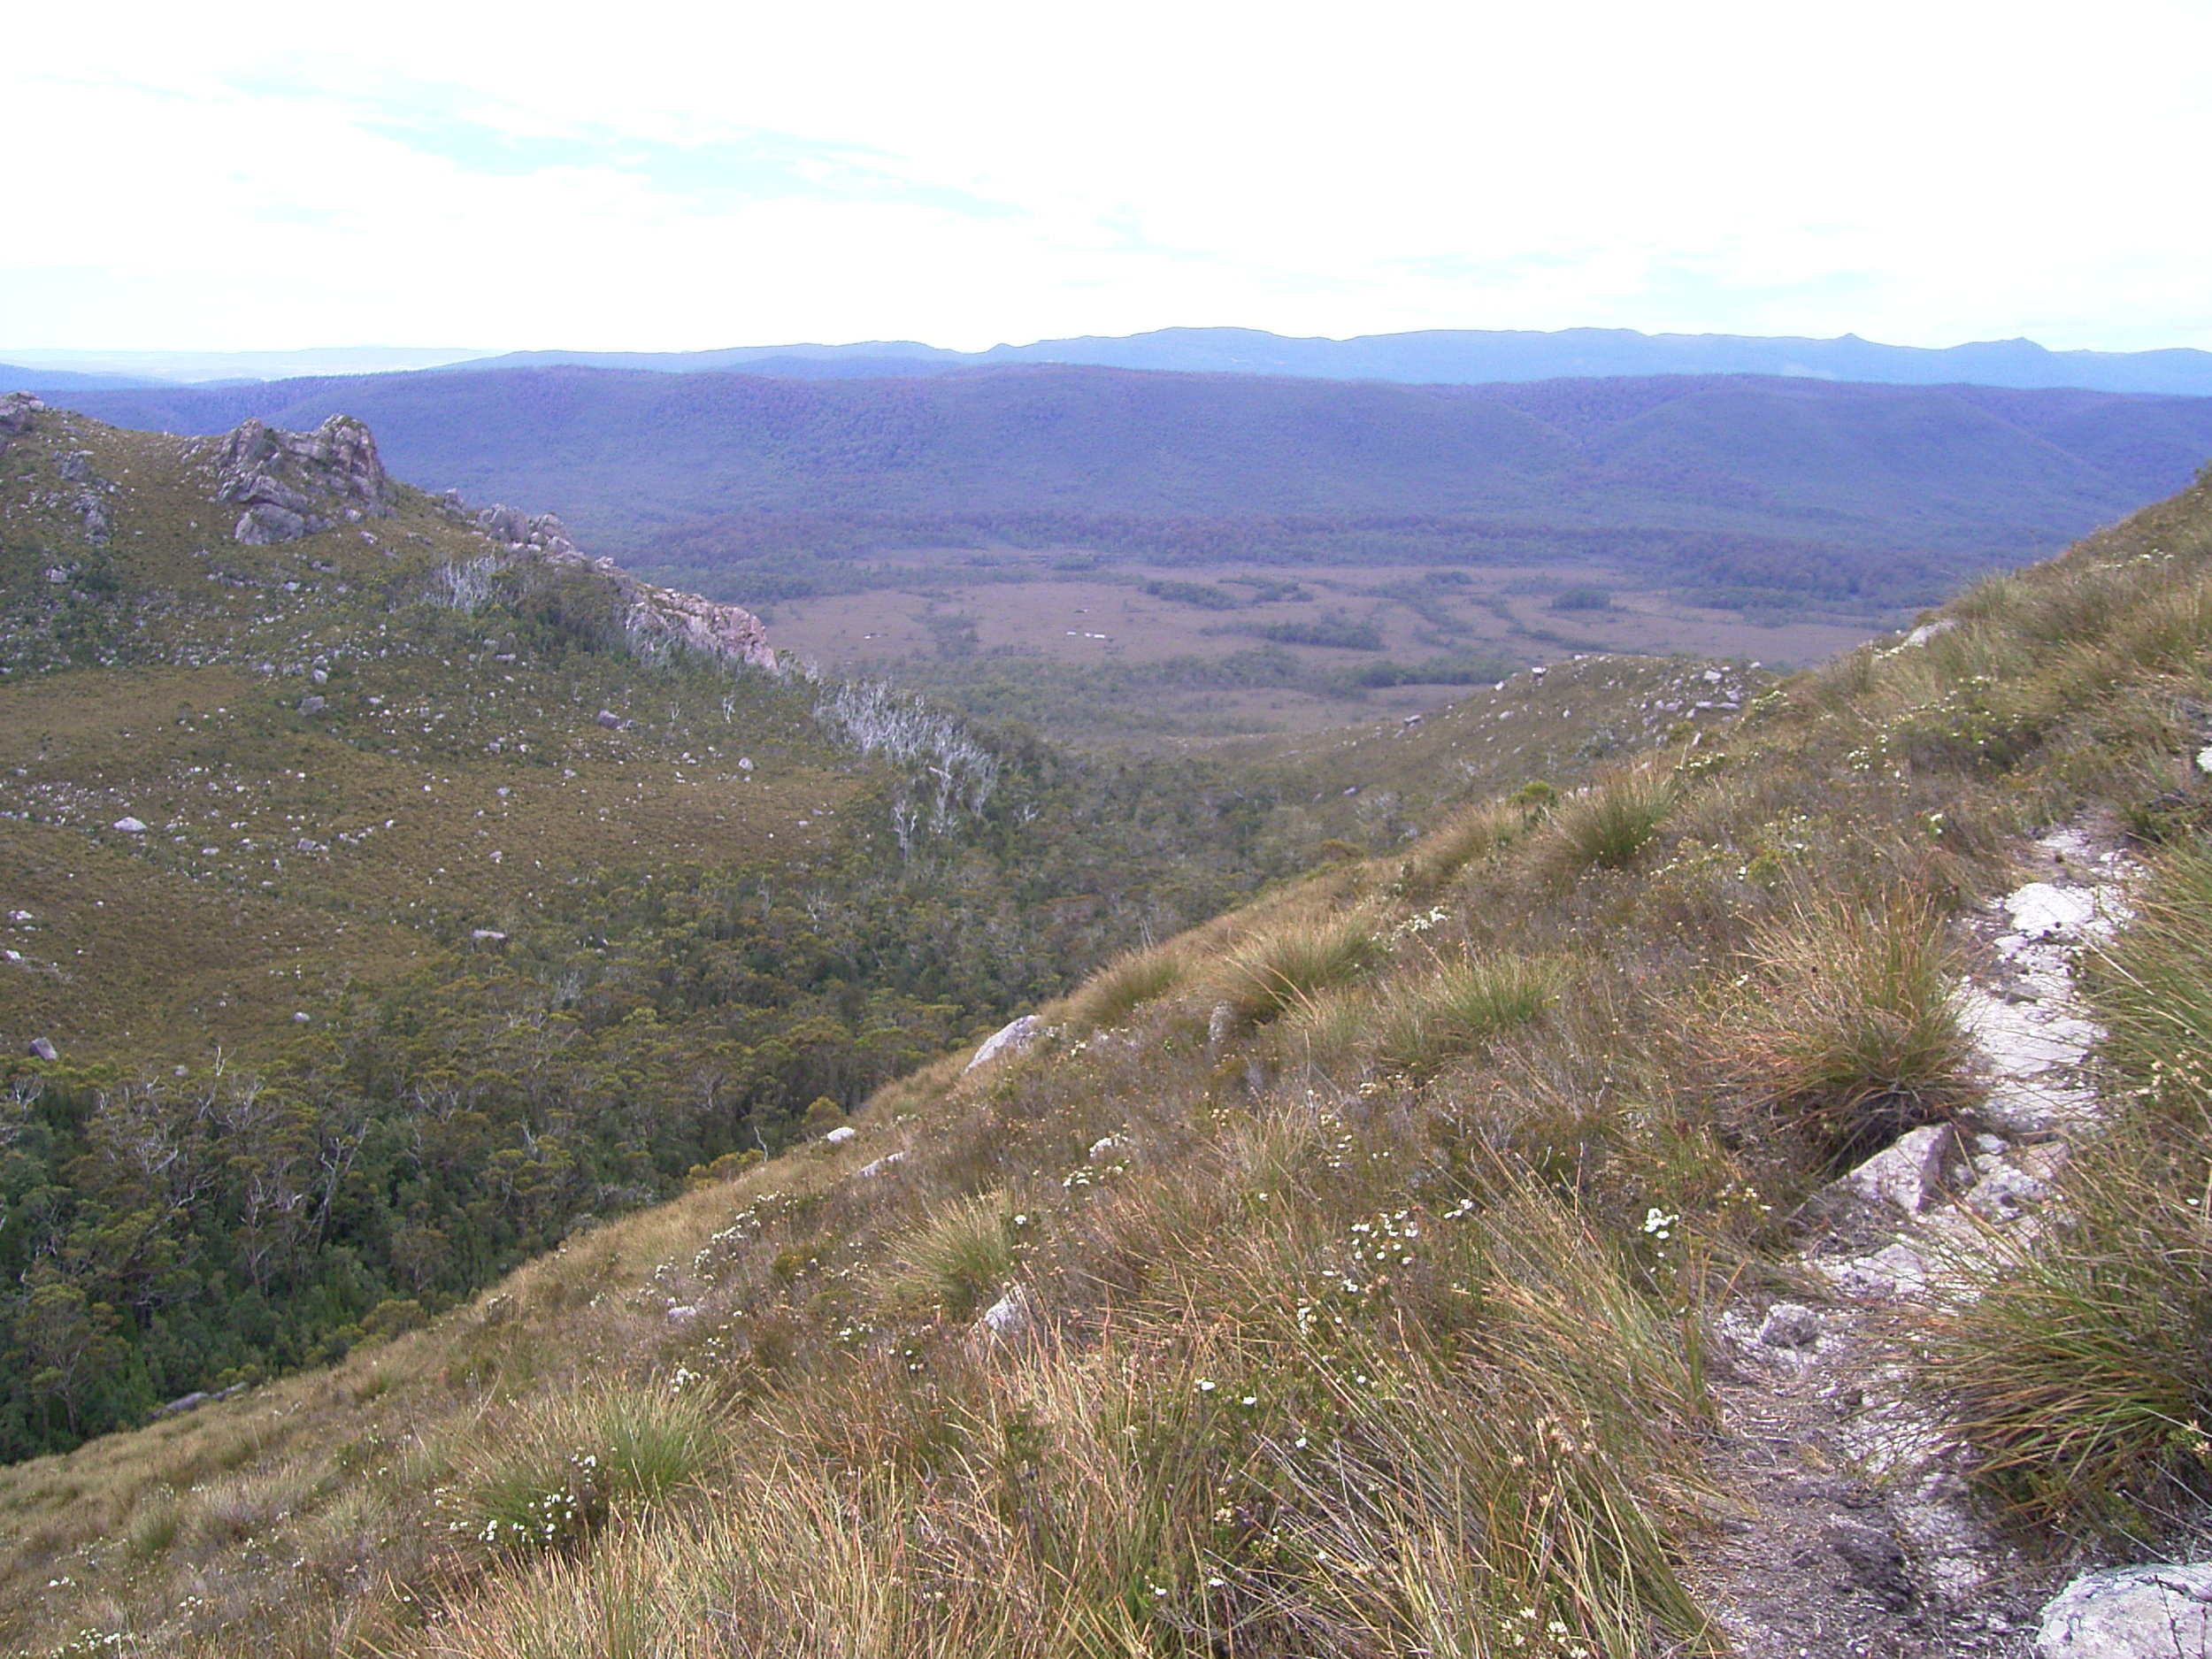 LOOKING DOWN AT THE VALE OF RASSELAS